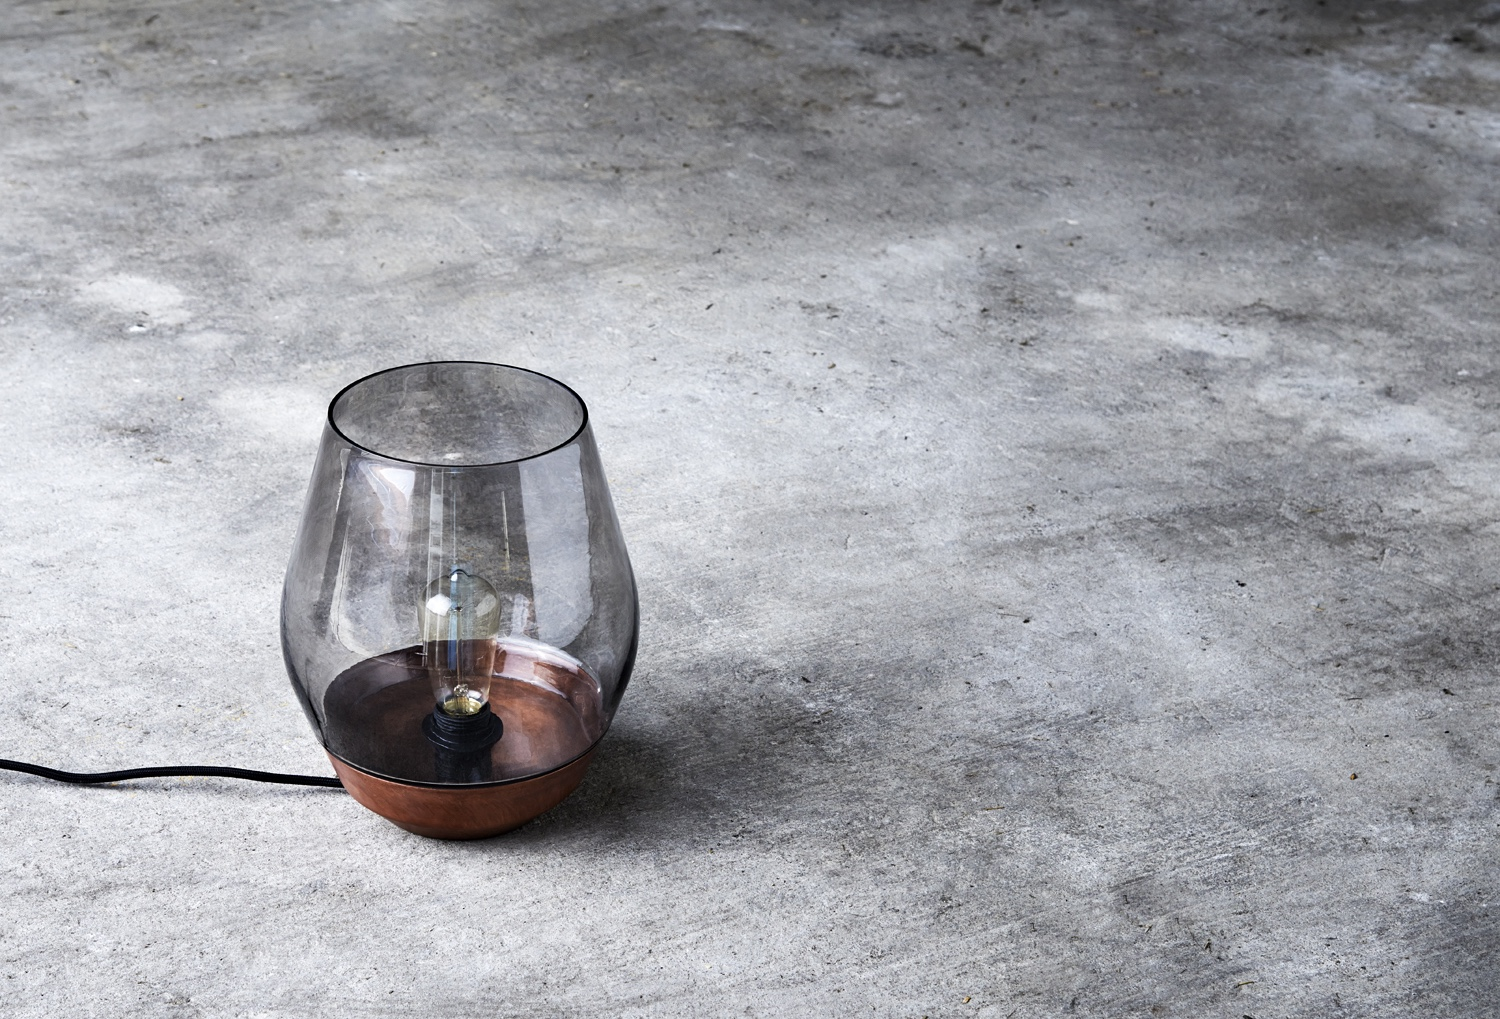 Bowl Table Lamp designed by Knut Bendik Humlevik. Shown in raw copper with light smoked glass. This design is inspired by a traditional lantern shape.